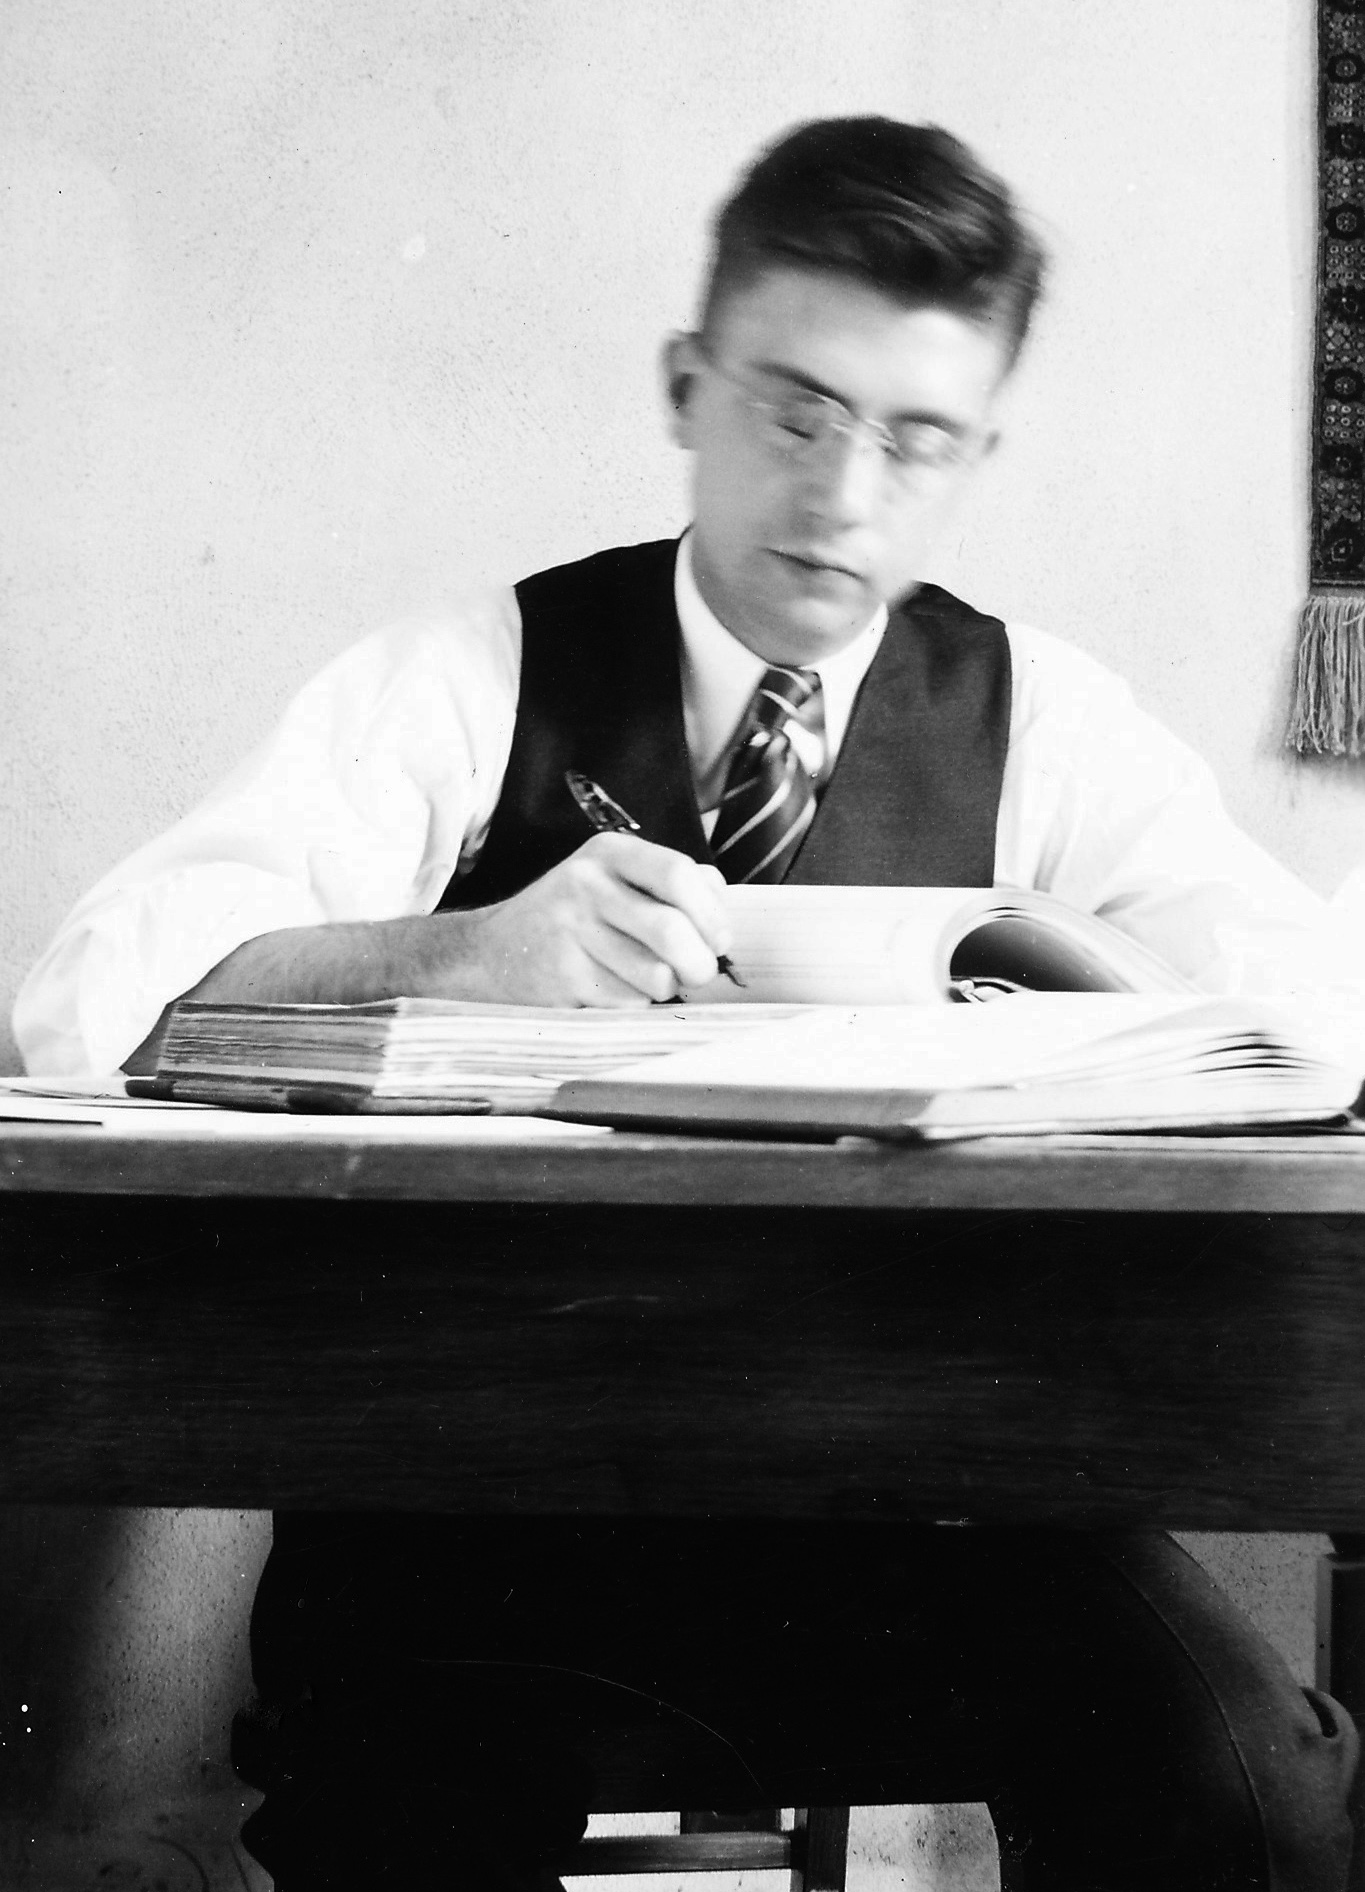 Ernie studying while in college.